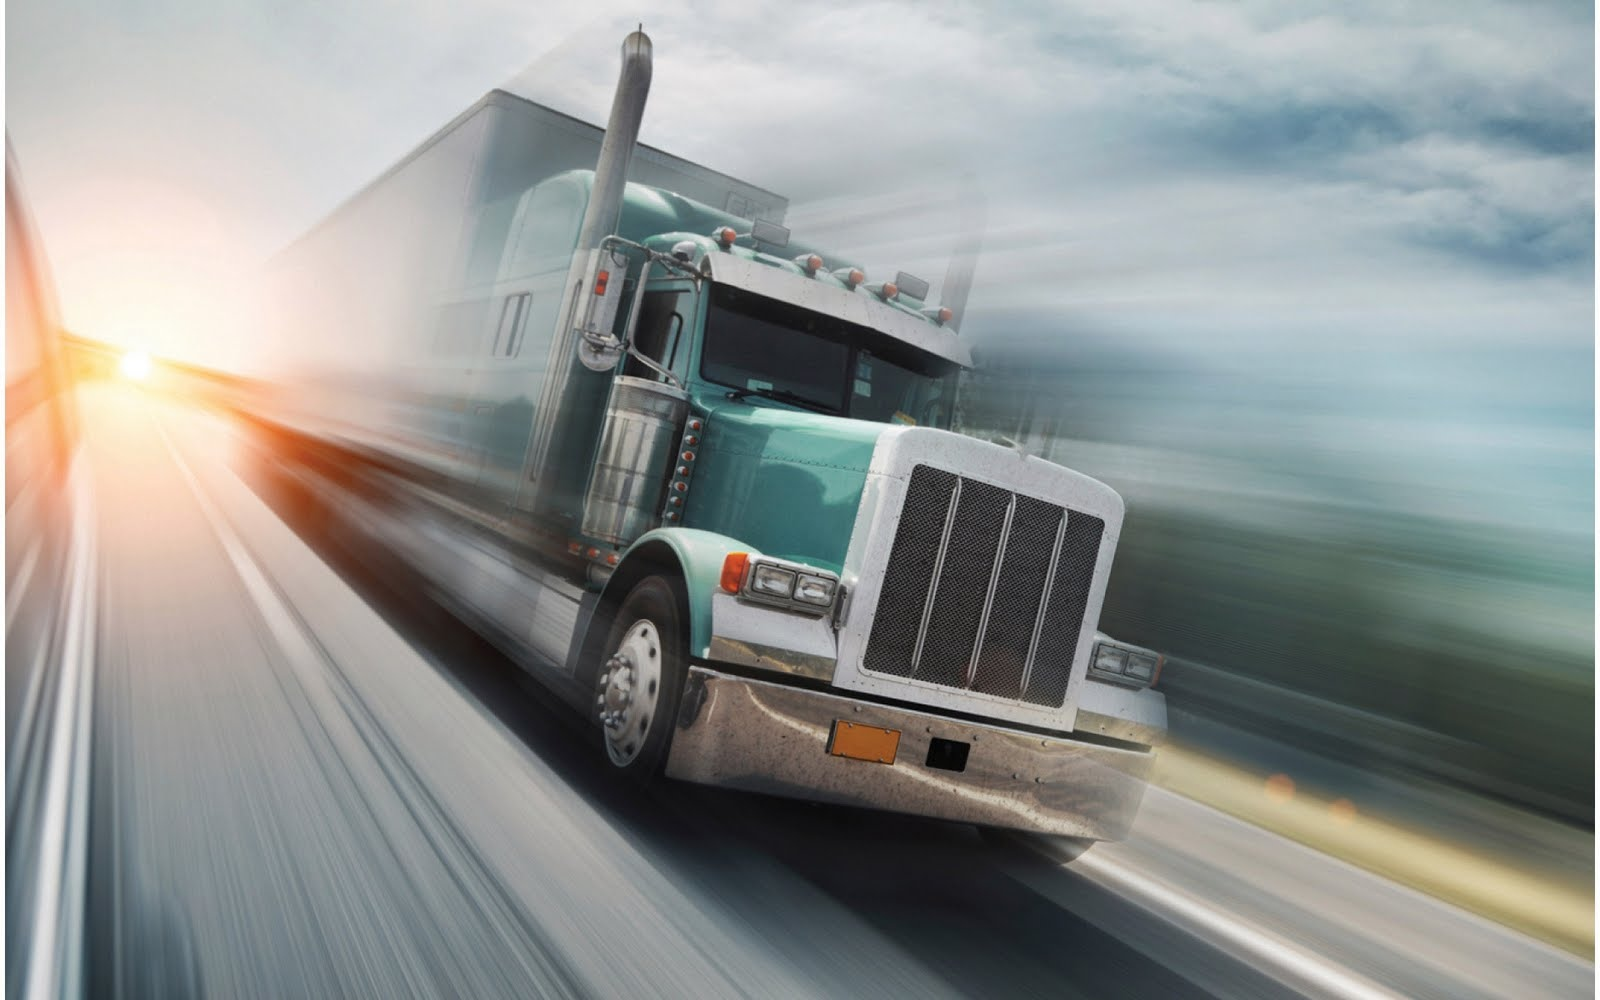 How common are truck accidents in Austin?